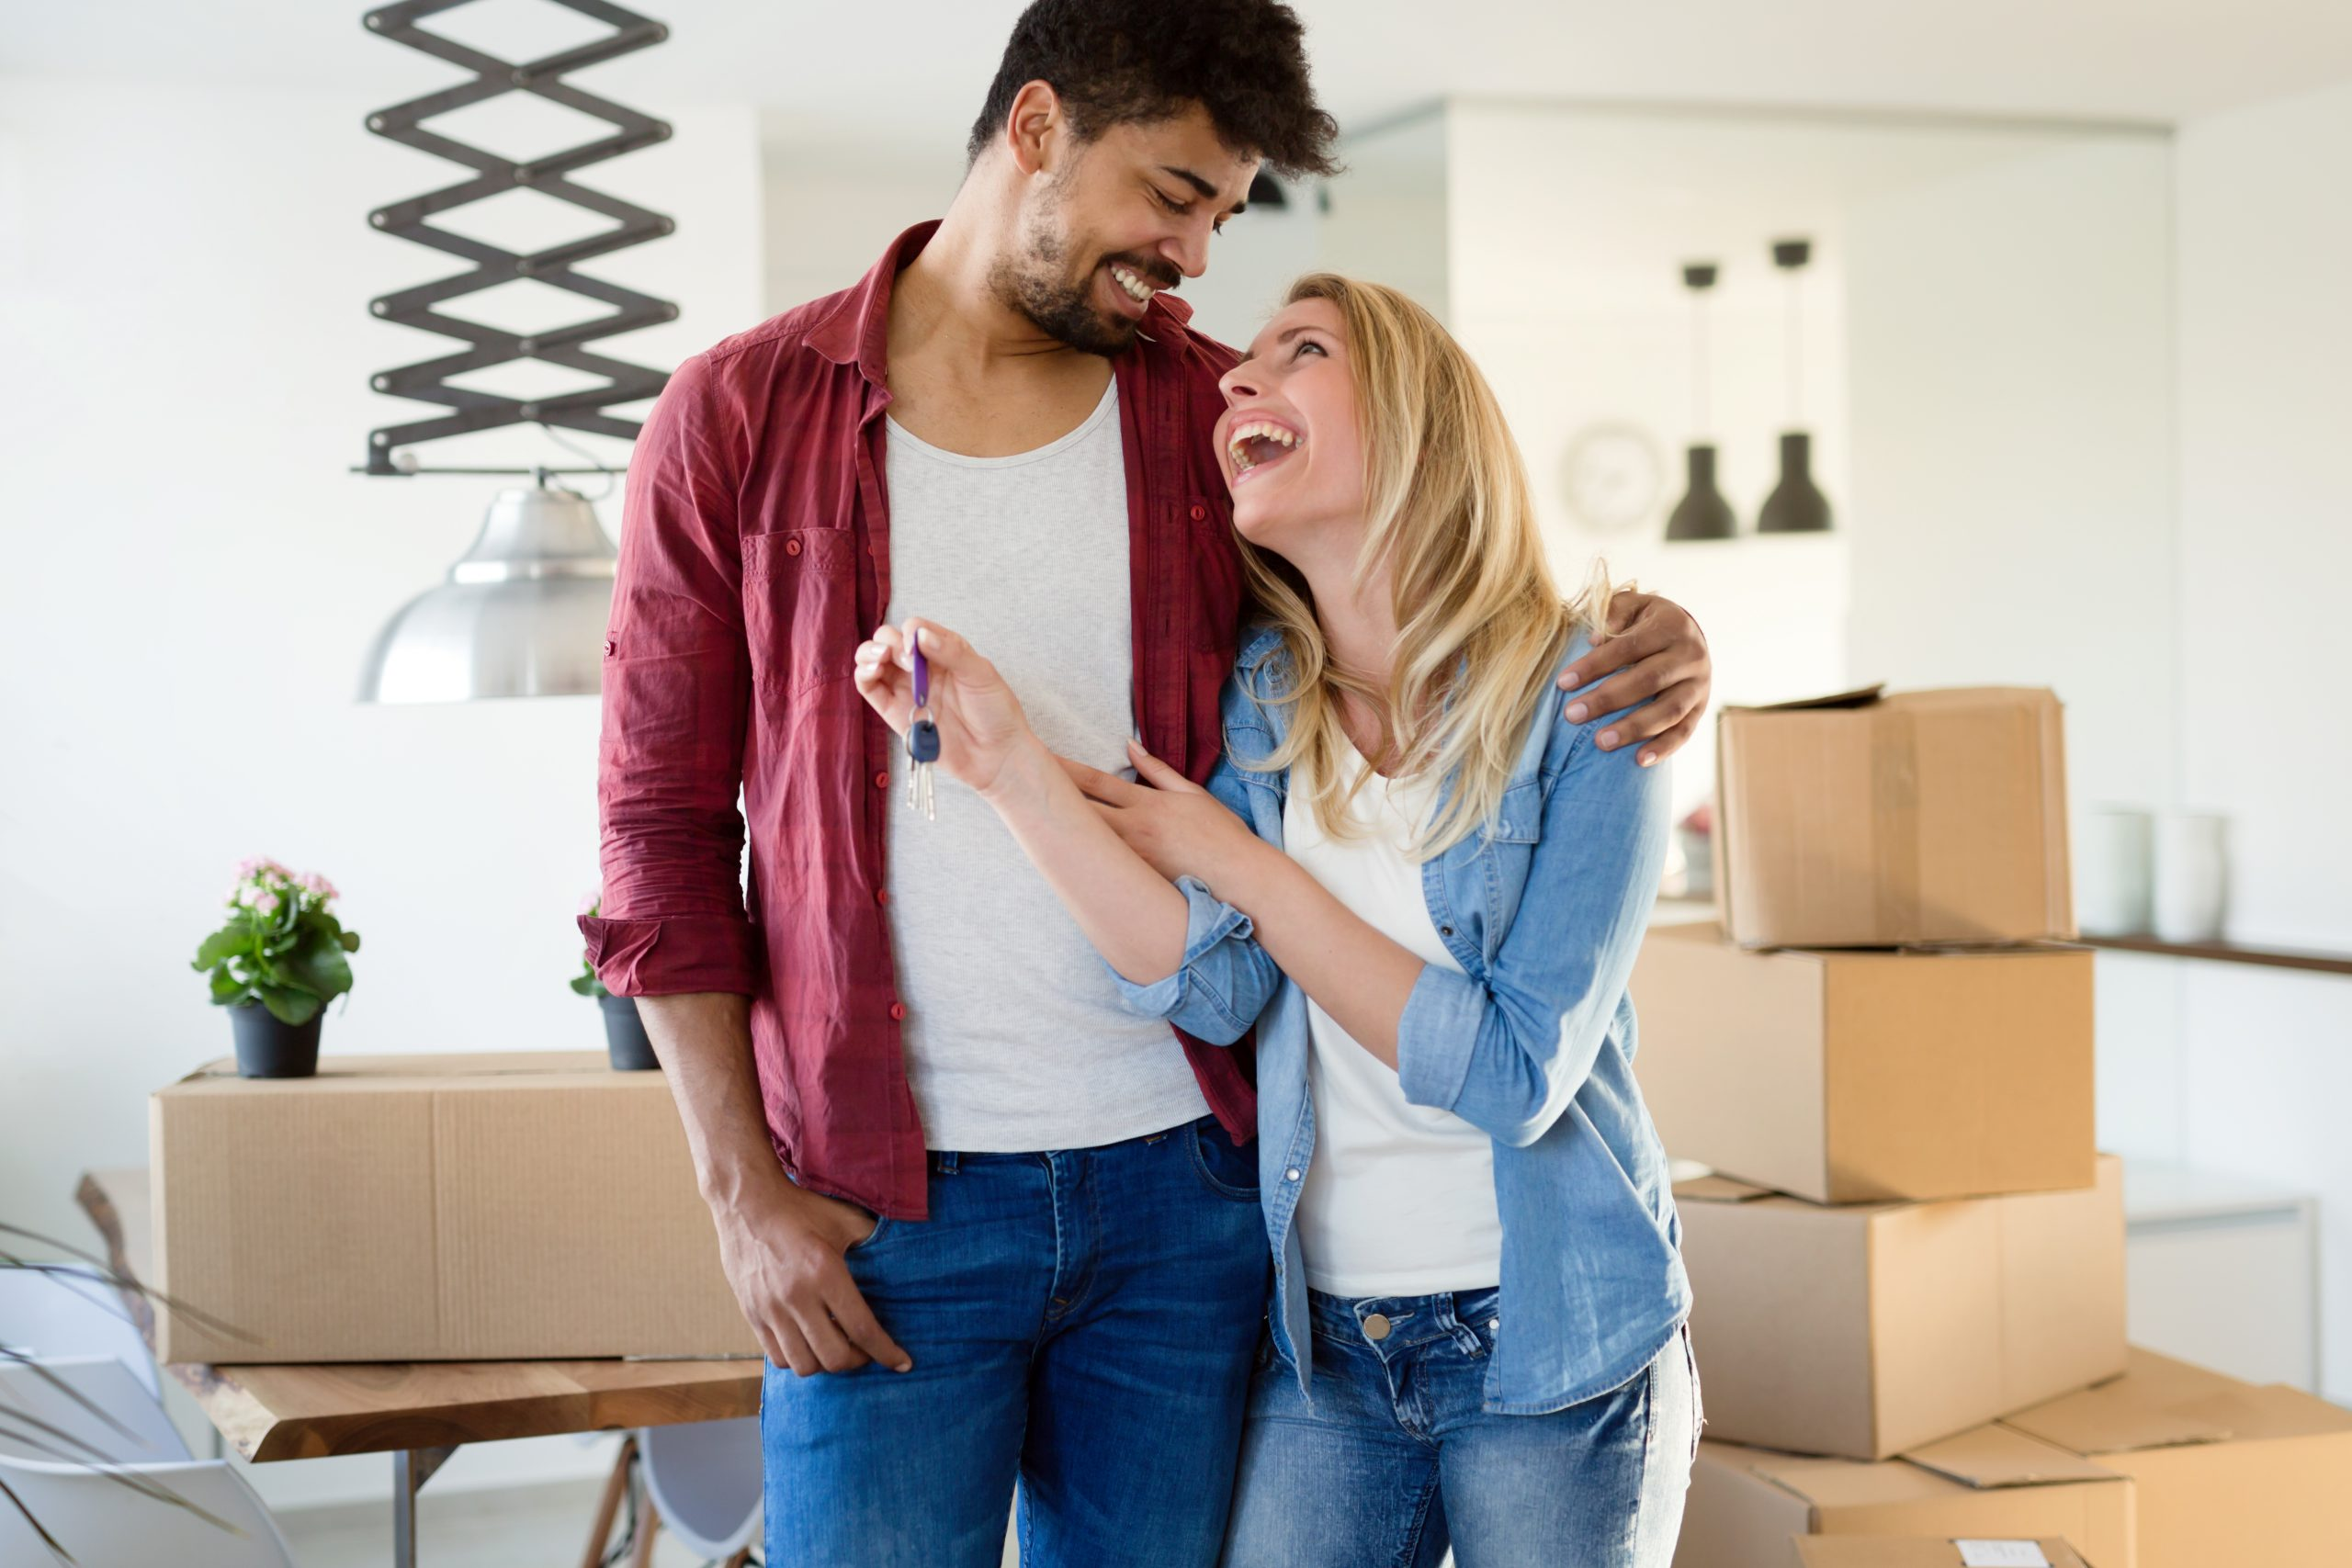 Image of happy couple moving into a house symbolizing your ideal customers or target audience